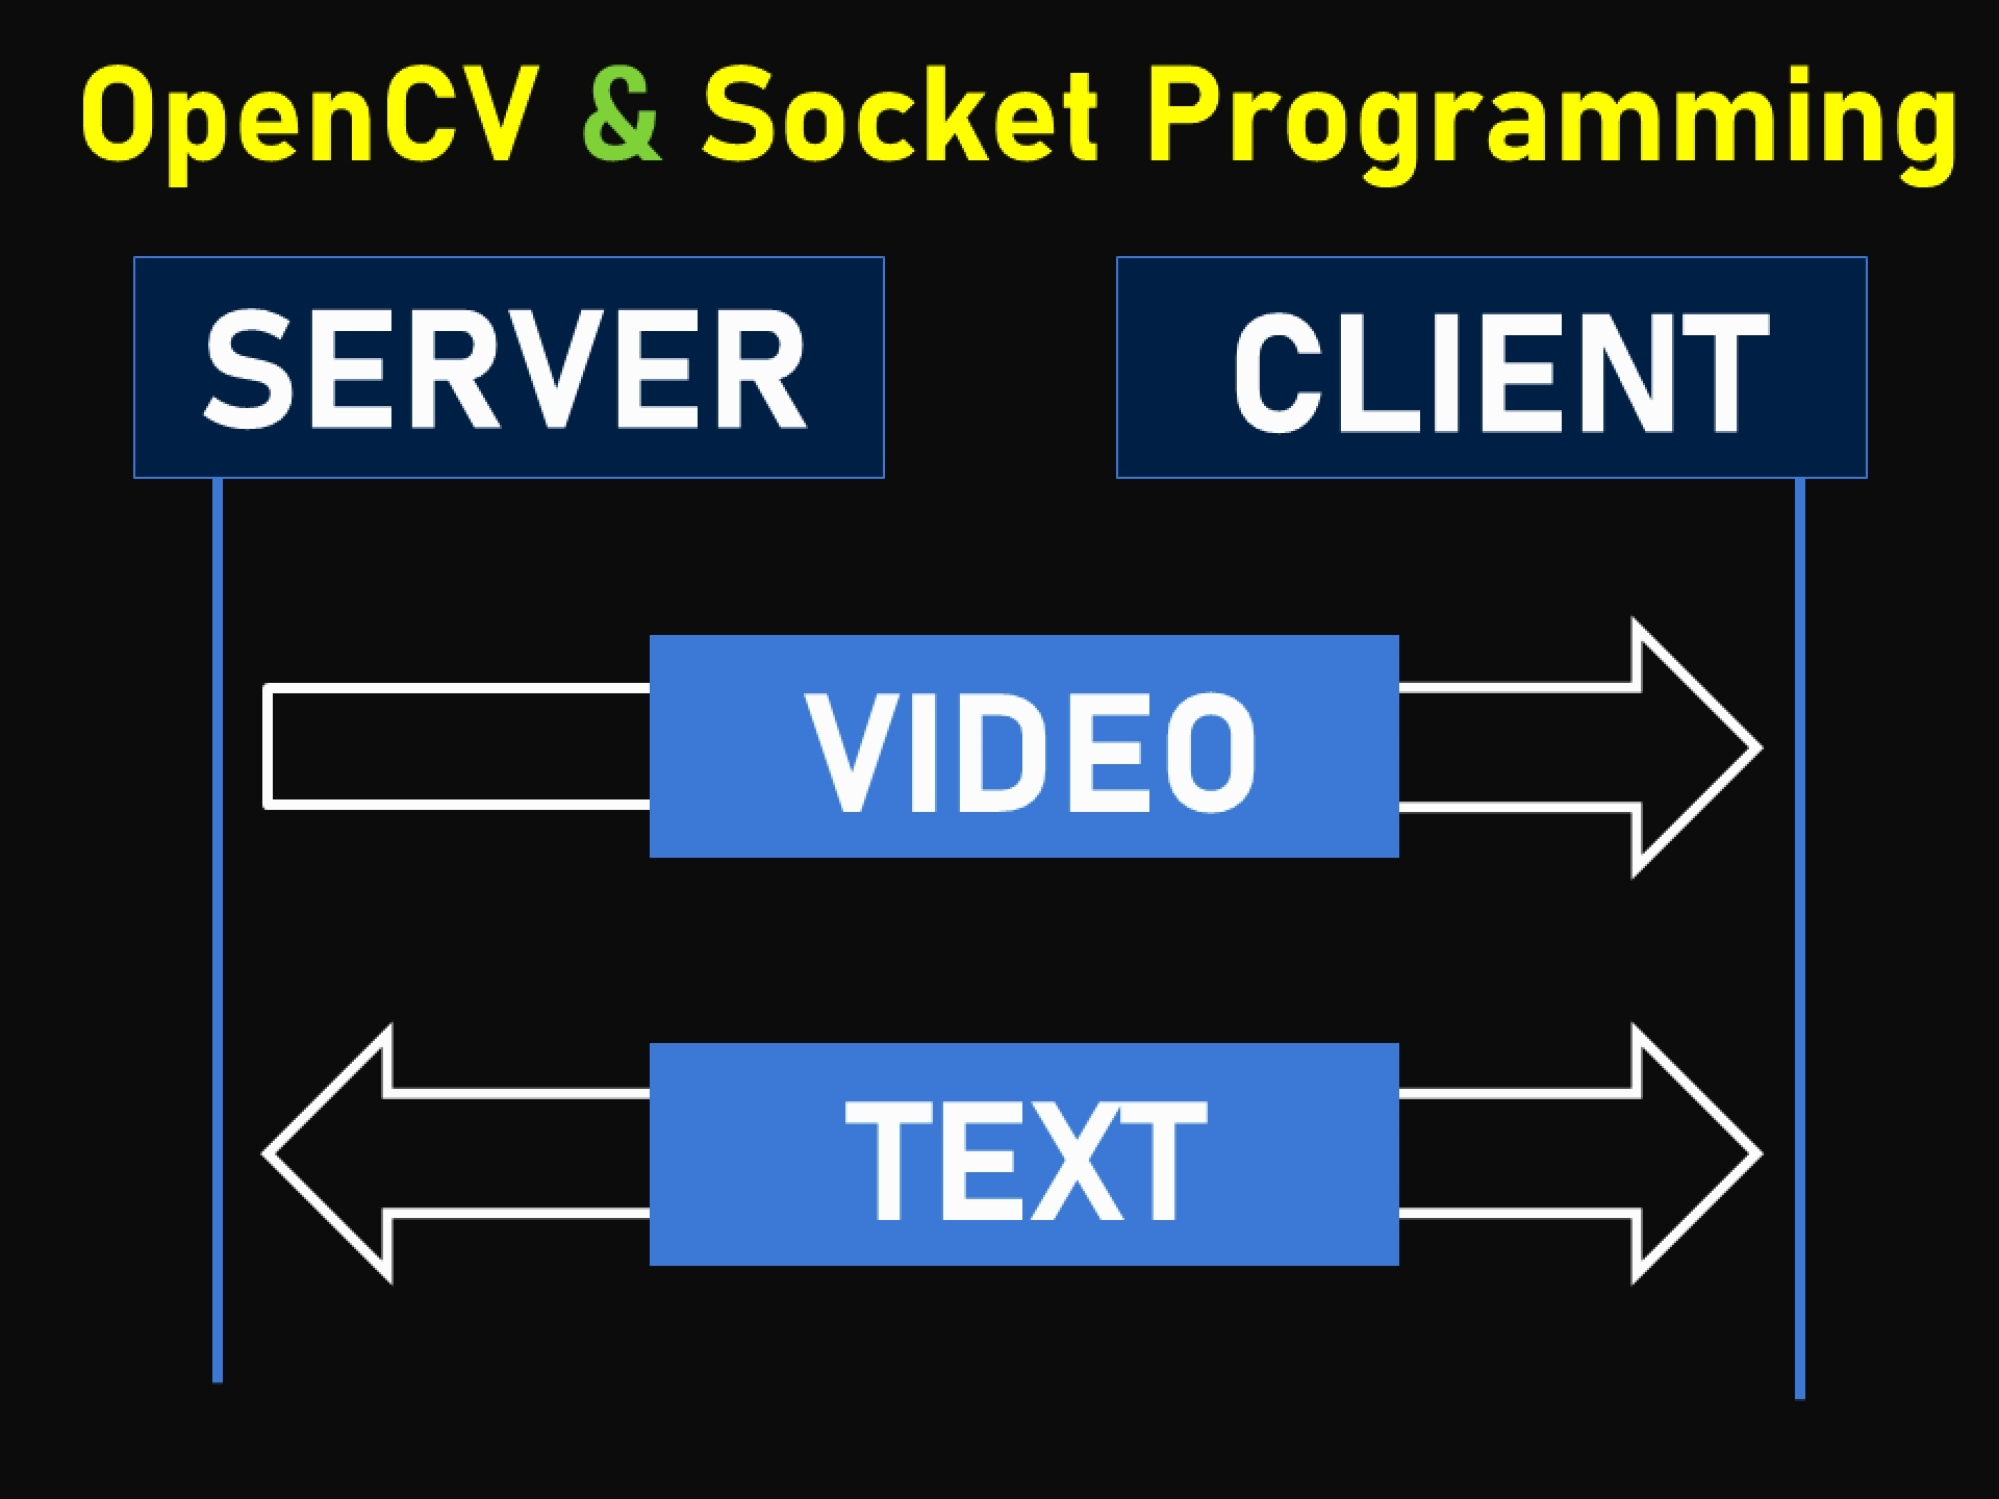 How to stream video and bidirectional text in socket programming